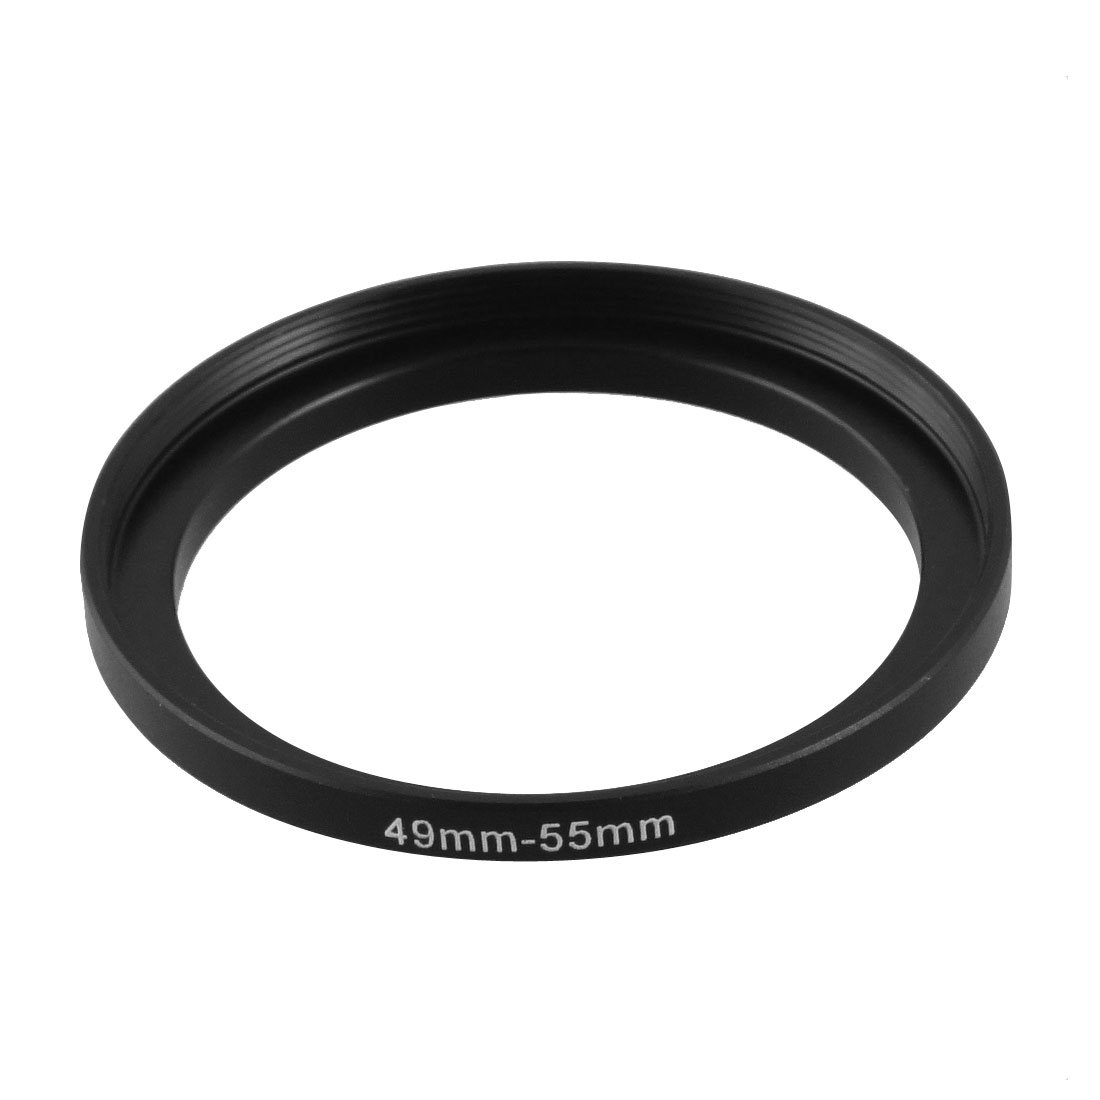 Camera Lens Filter Replacement 49mm-55mm Step Up Ring Adapter